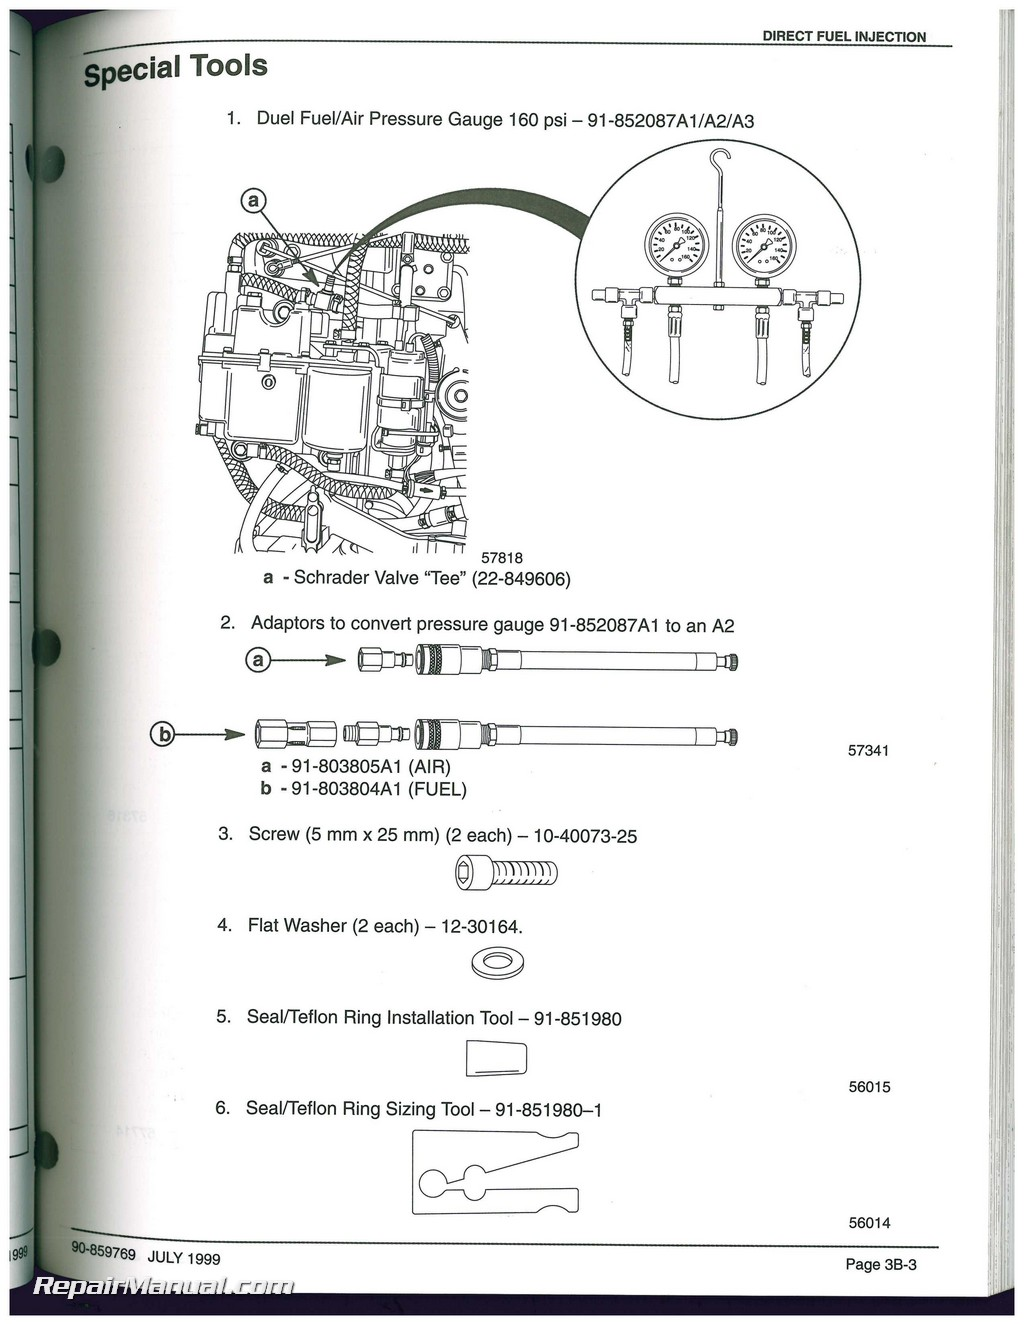 Used Mariner Mercury 200 225 Optimax Direct Fuel Injection Service Wiring Diagram Manual